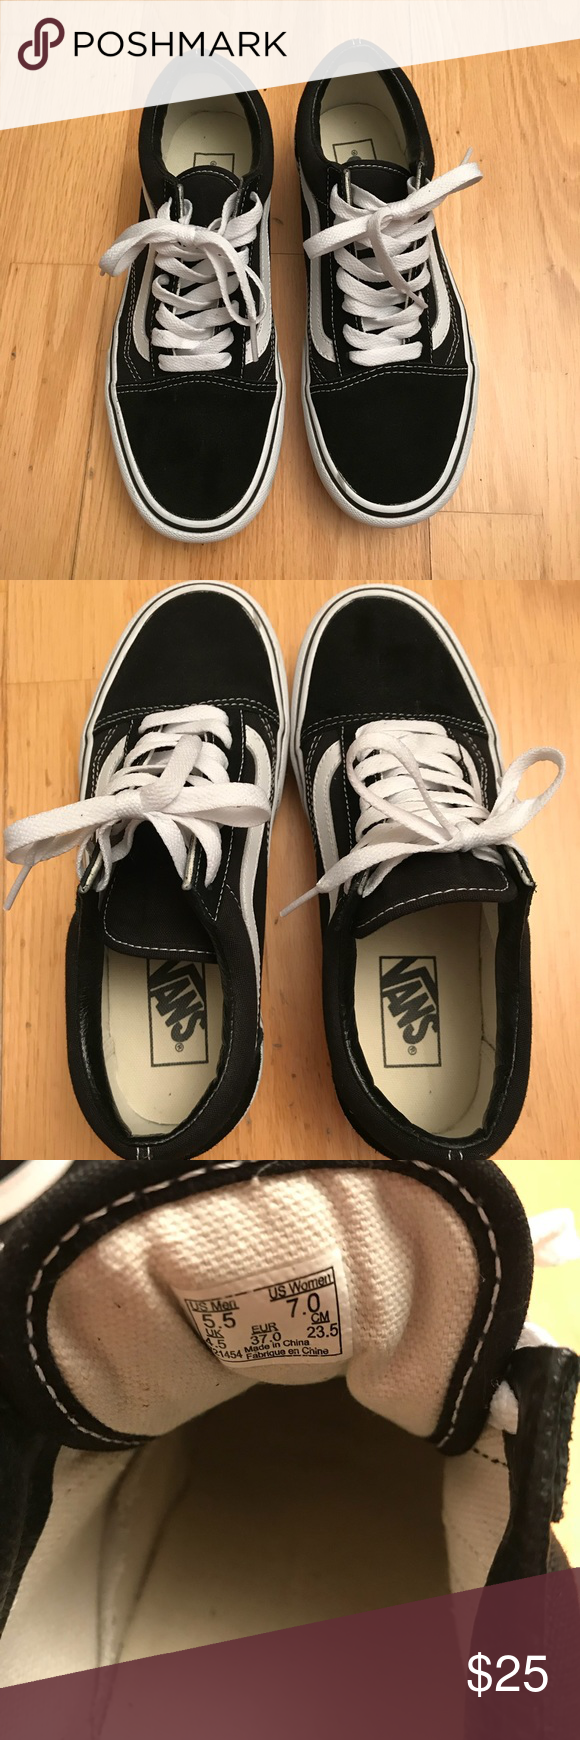 dd91836a1205 Vans old skool platform skate shoes (sneakers) Rubber sole Lace-up style  Vulcanized